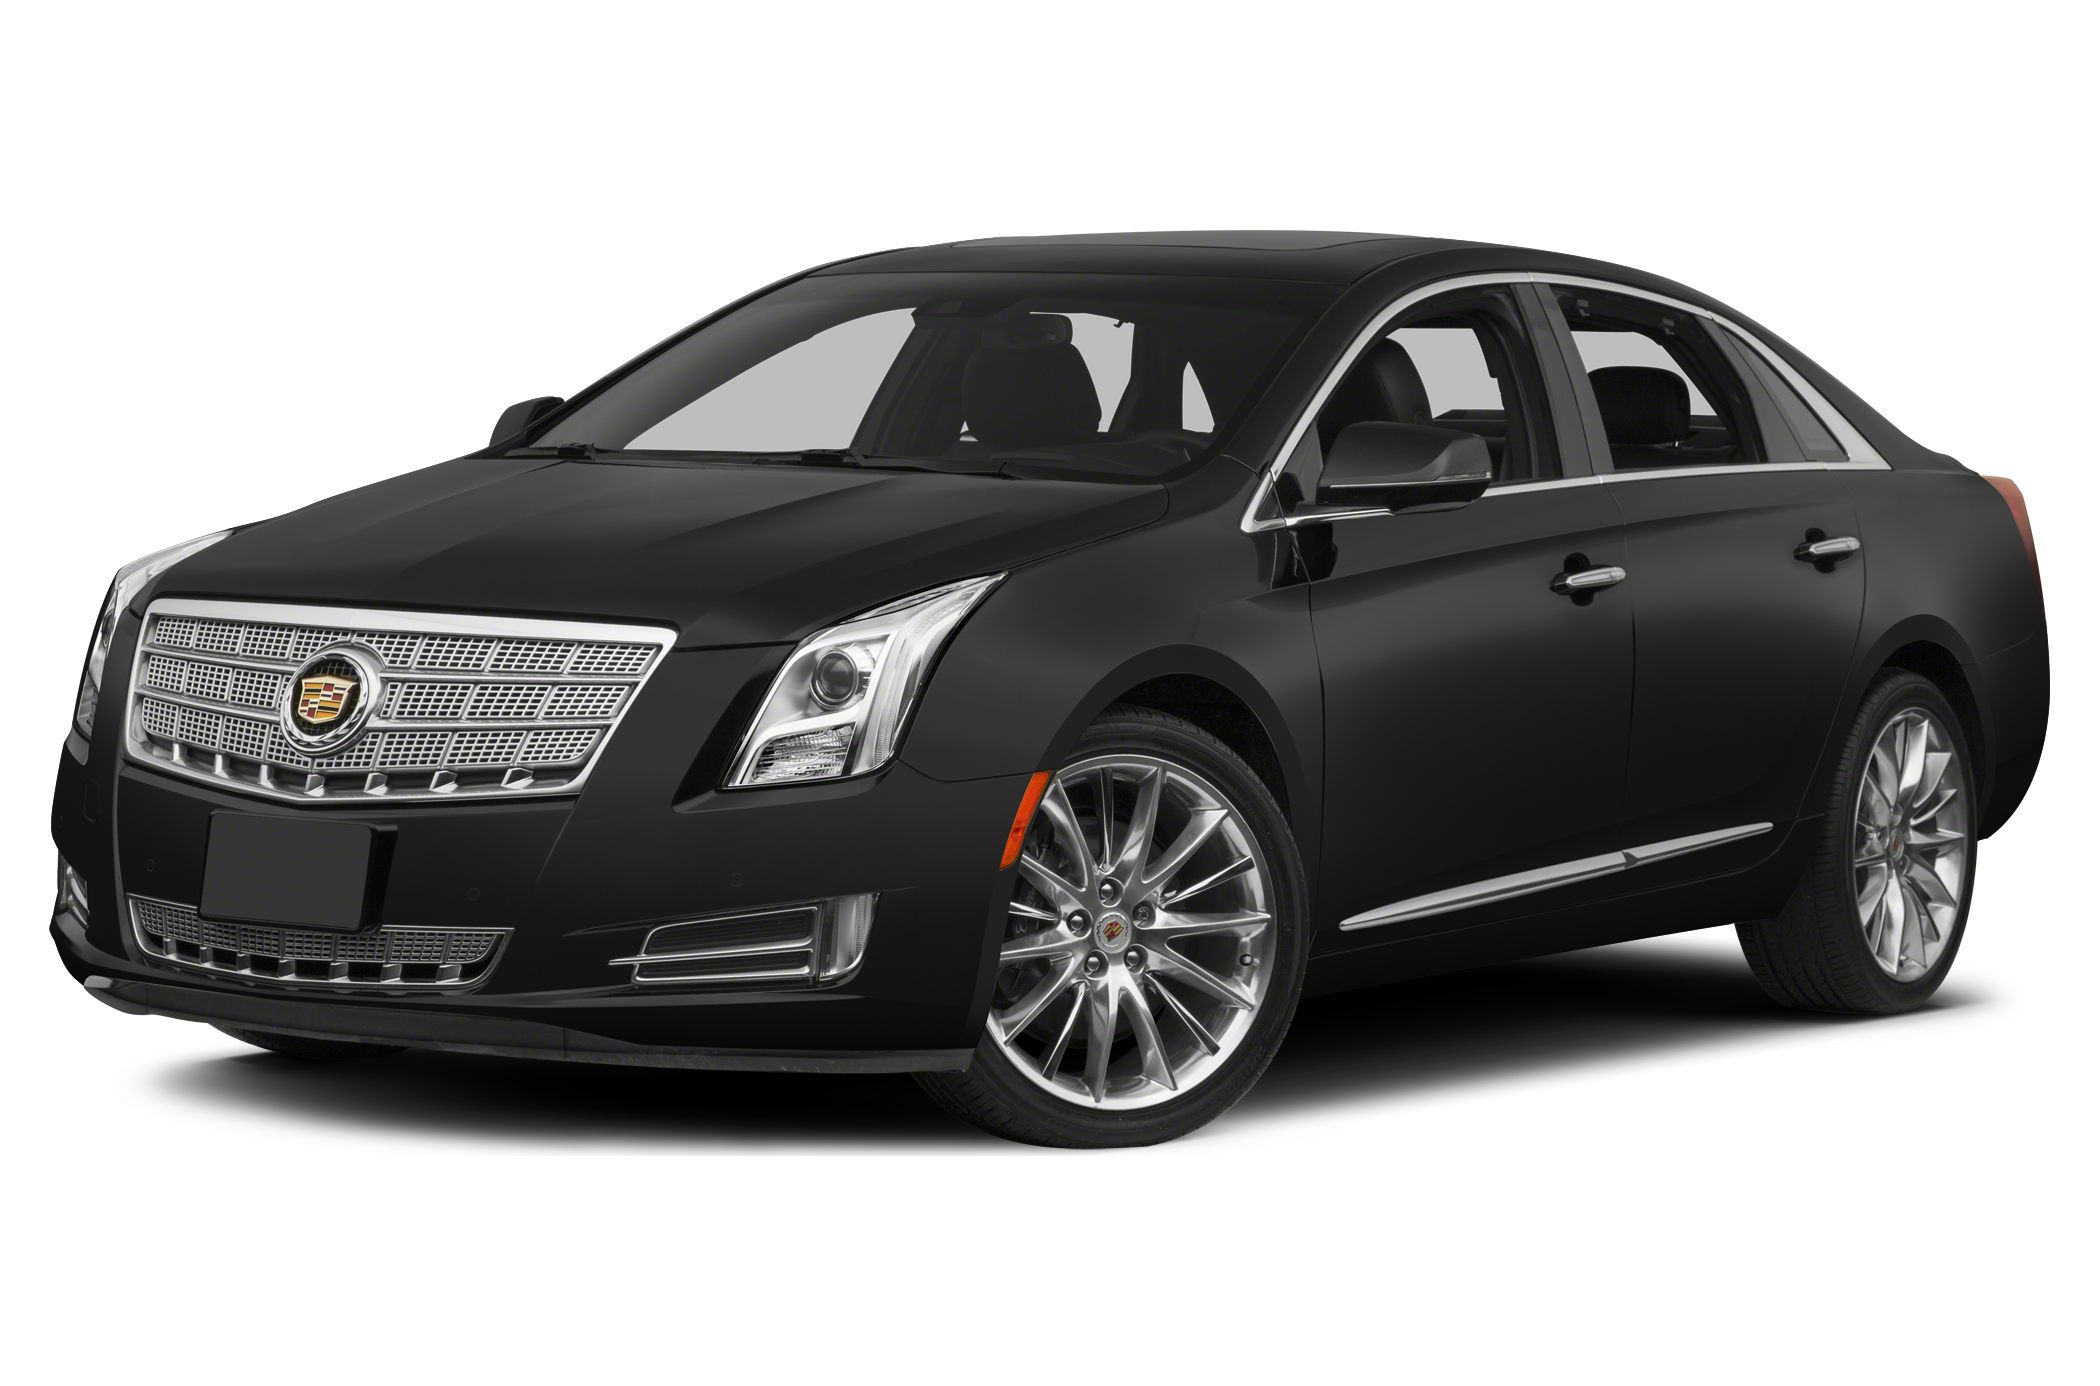 2015 Cadillac XTS Platinum Sedan for sale in Little Rock for $64,600 with 0 miles